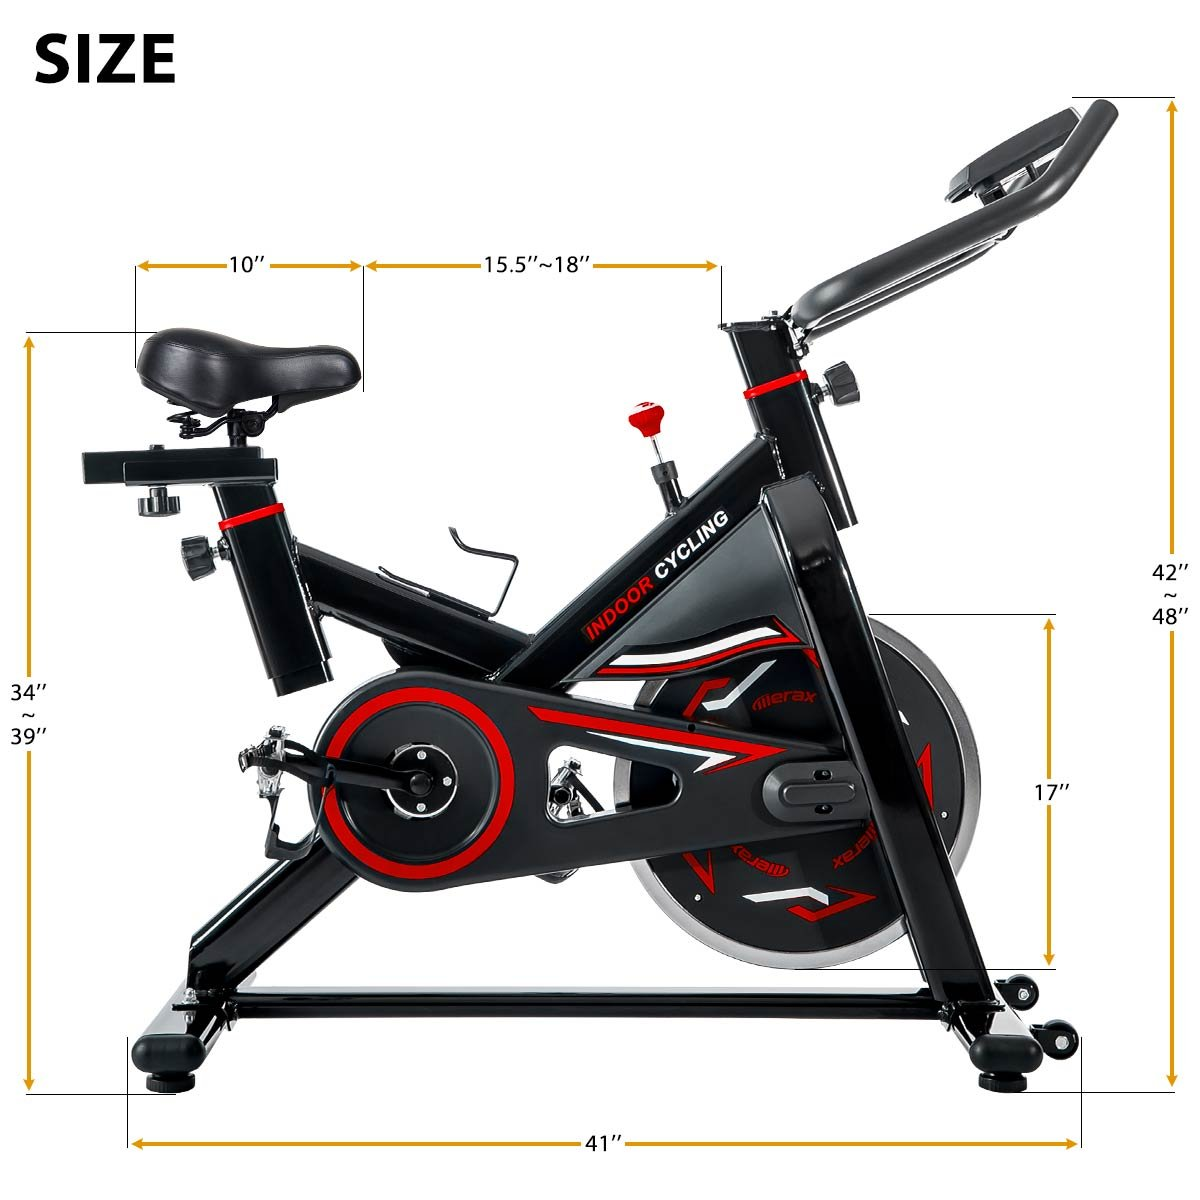 Merax Deluxe Indoor Cycling Bike Cycle Trainer Exercise Bicycle (Black & Red) by Merax (Image #7)